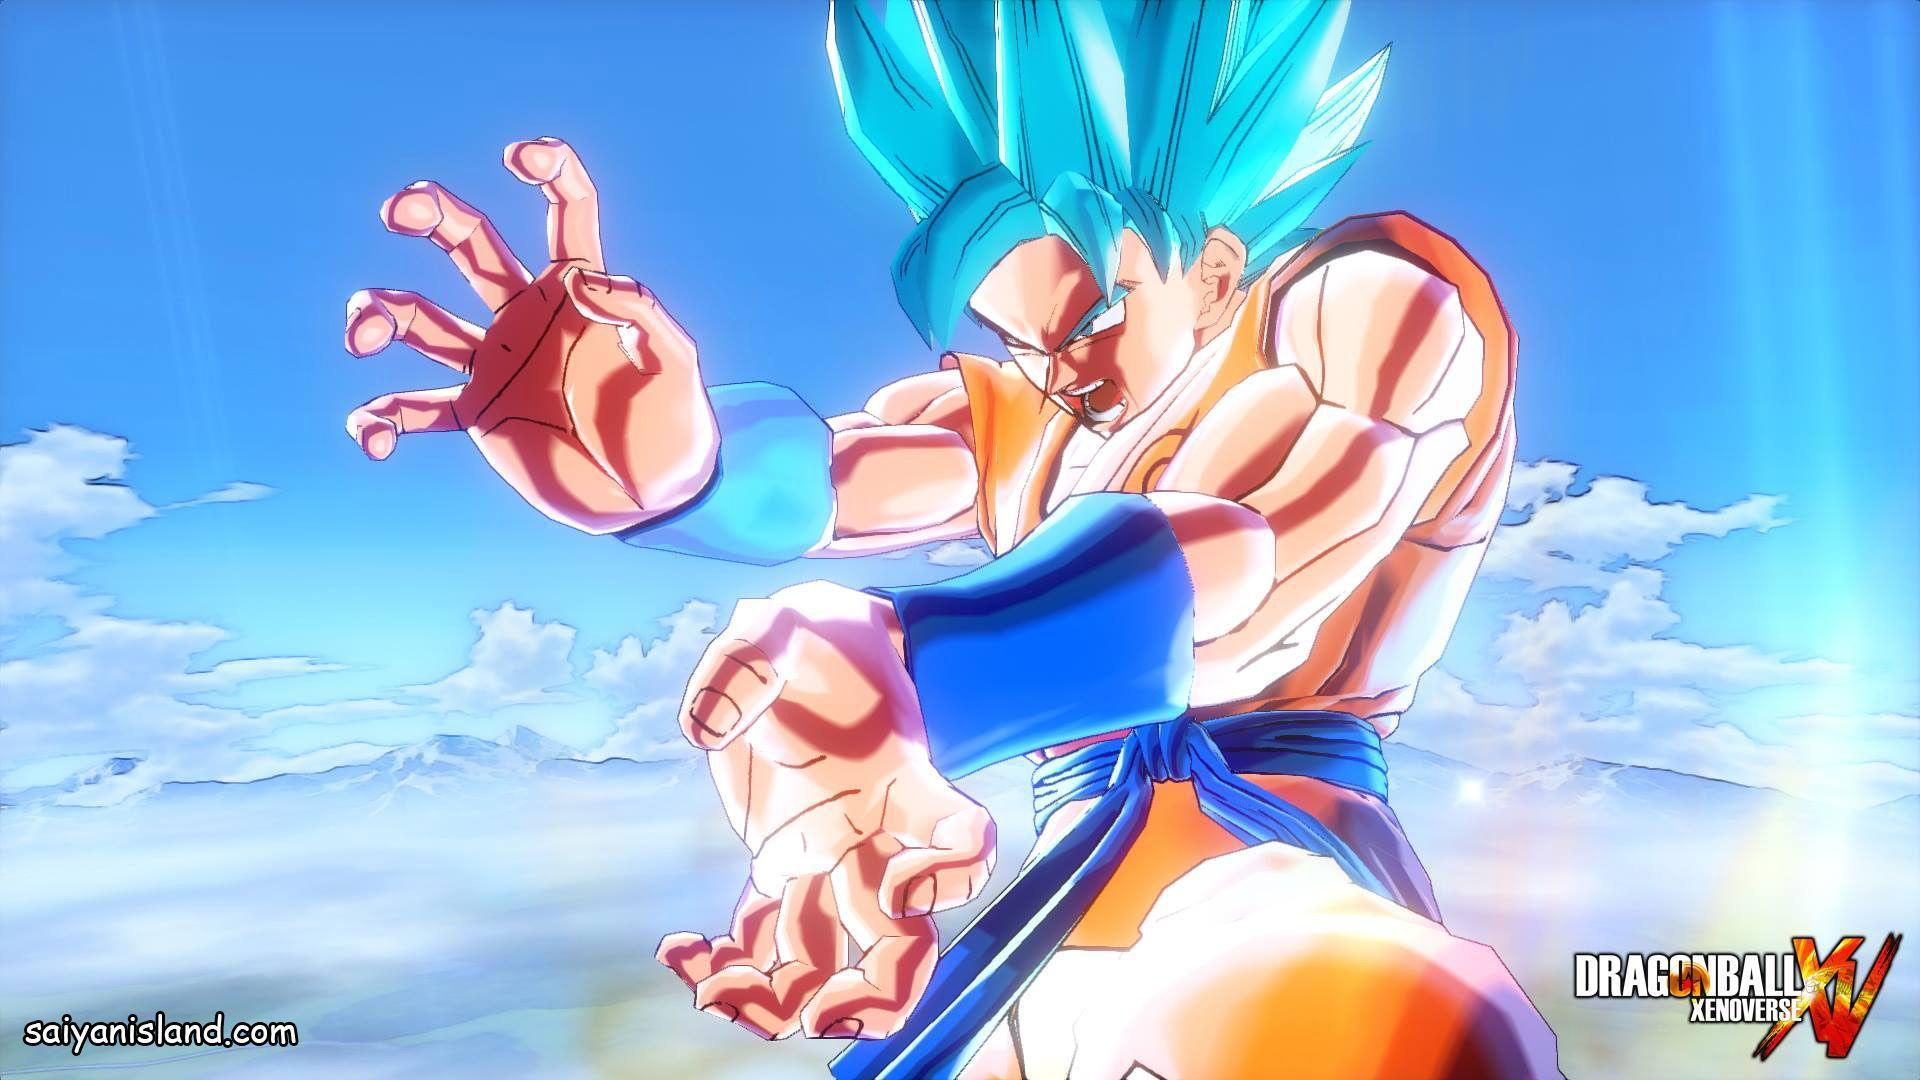 New Super Saiyan Gods Revealed In Photos From DRAGON BALL Z